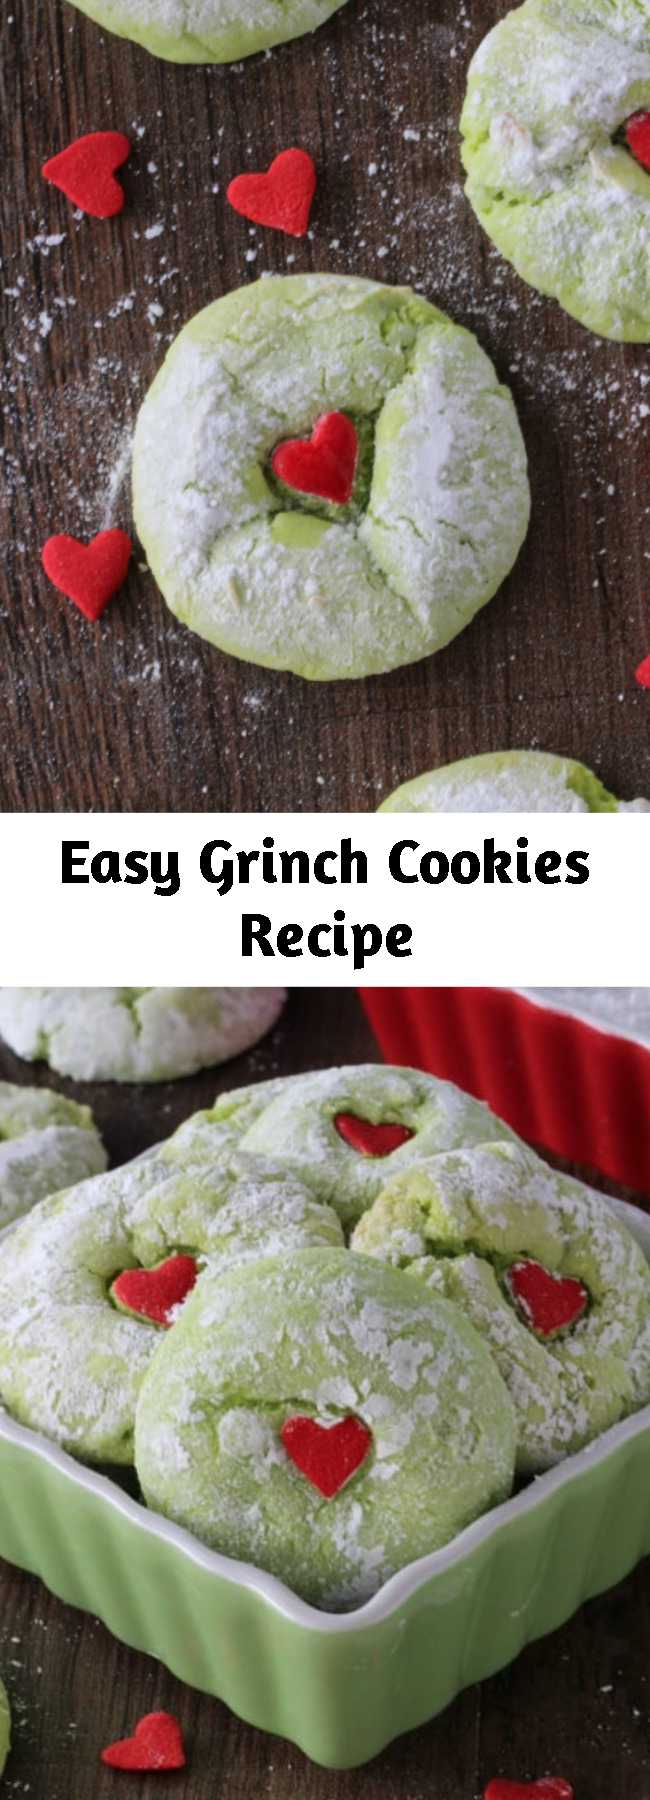 Easy Grinch Cookies Recipe - Made and loved by thousands every year! These Cake Mix Grinch Cookies are so easy and festive they will be sure to put you in the holiday mood.